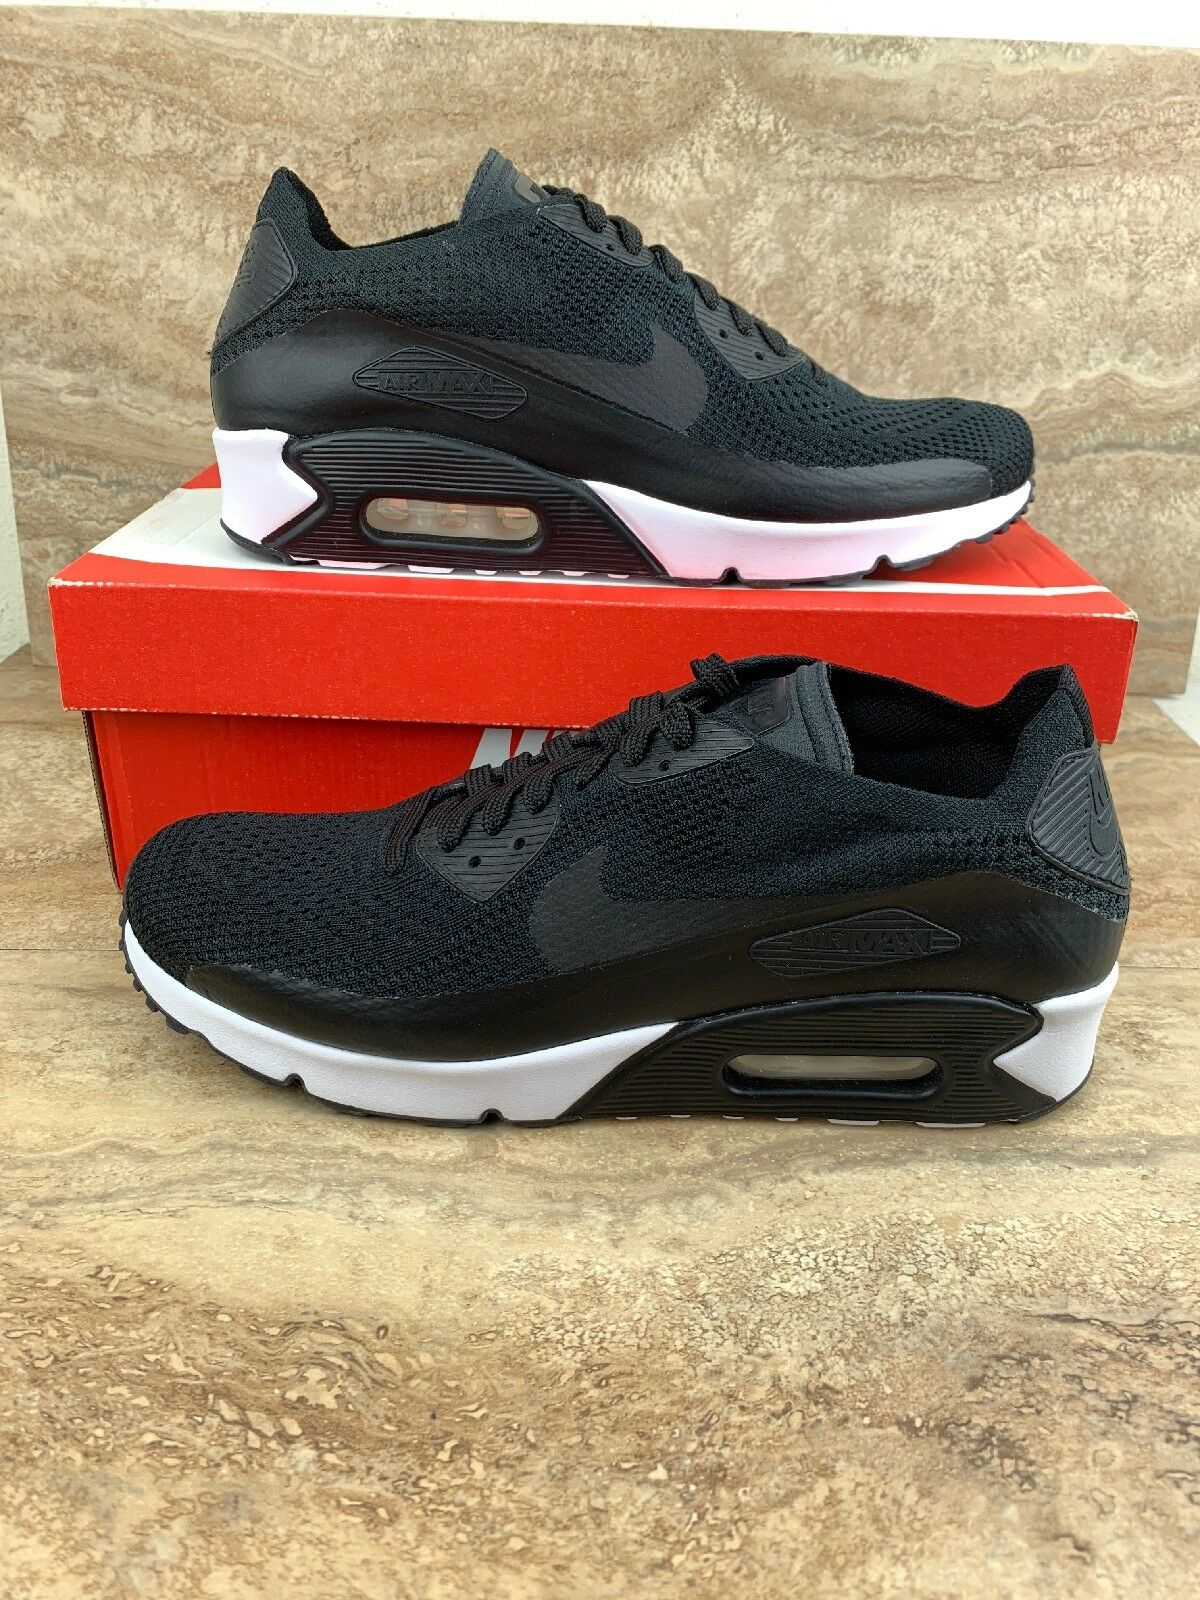 Nike Air Max 90 Ultra 2.0 Flyknit Running shoes Black White